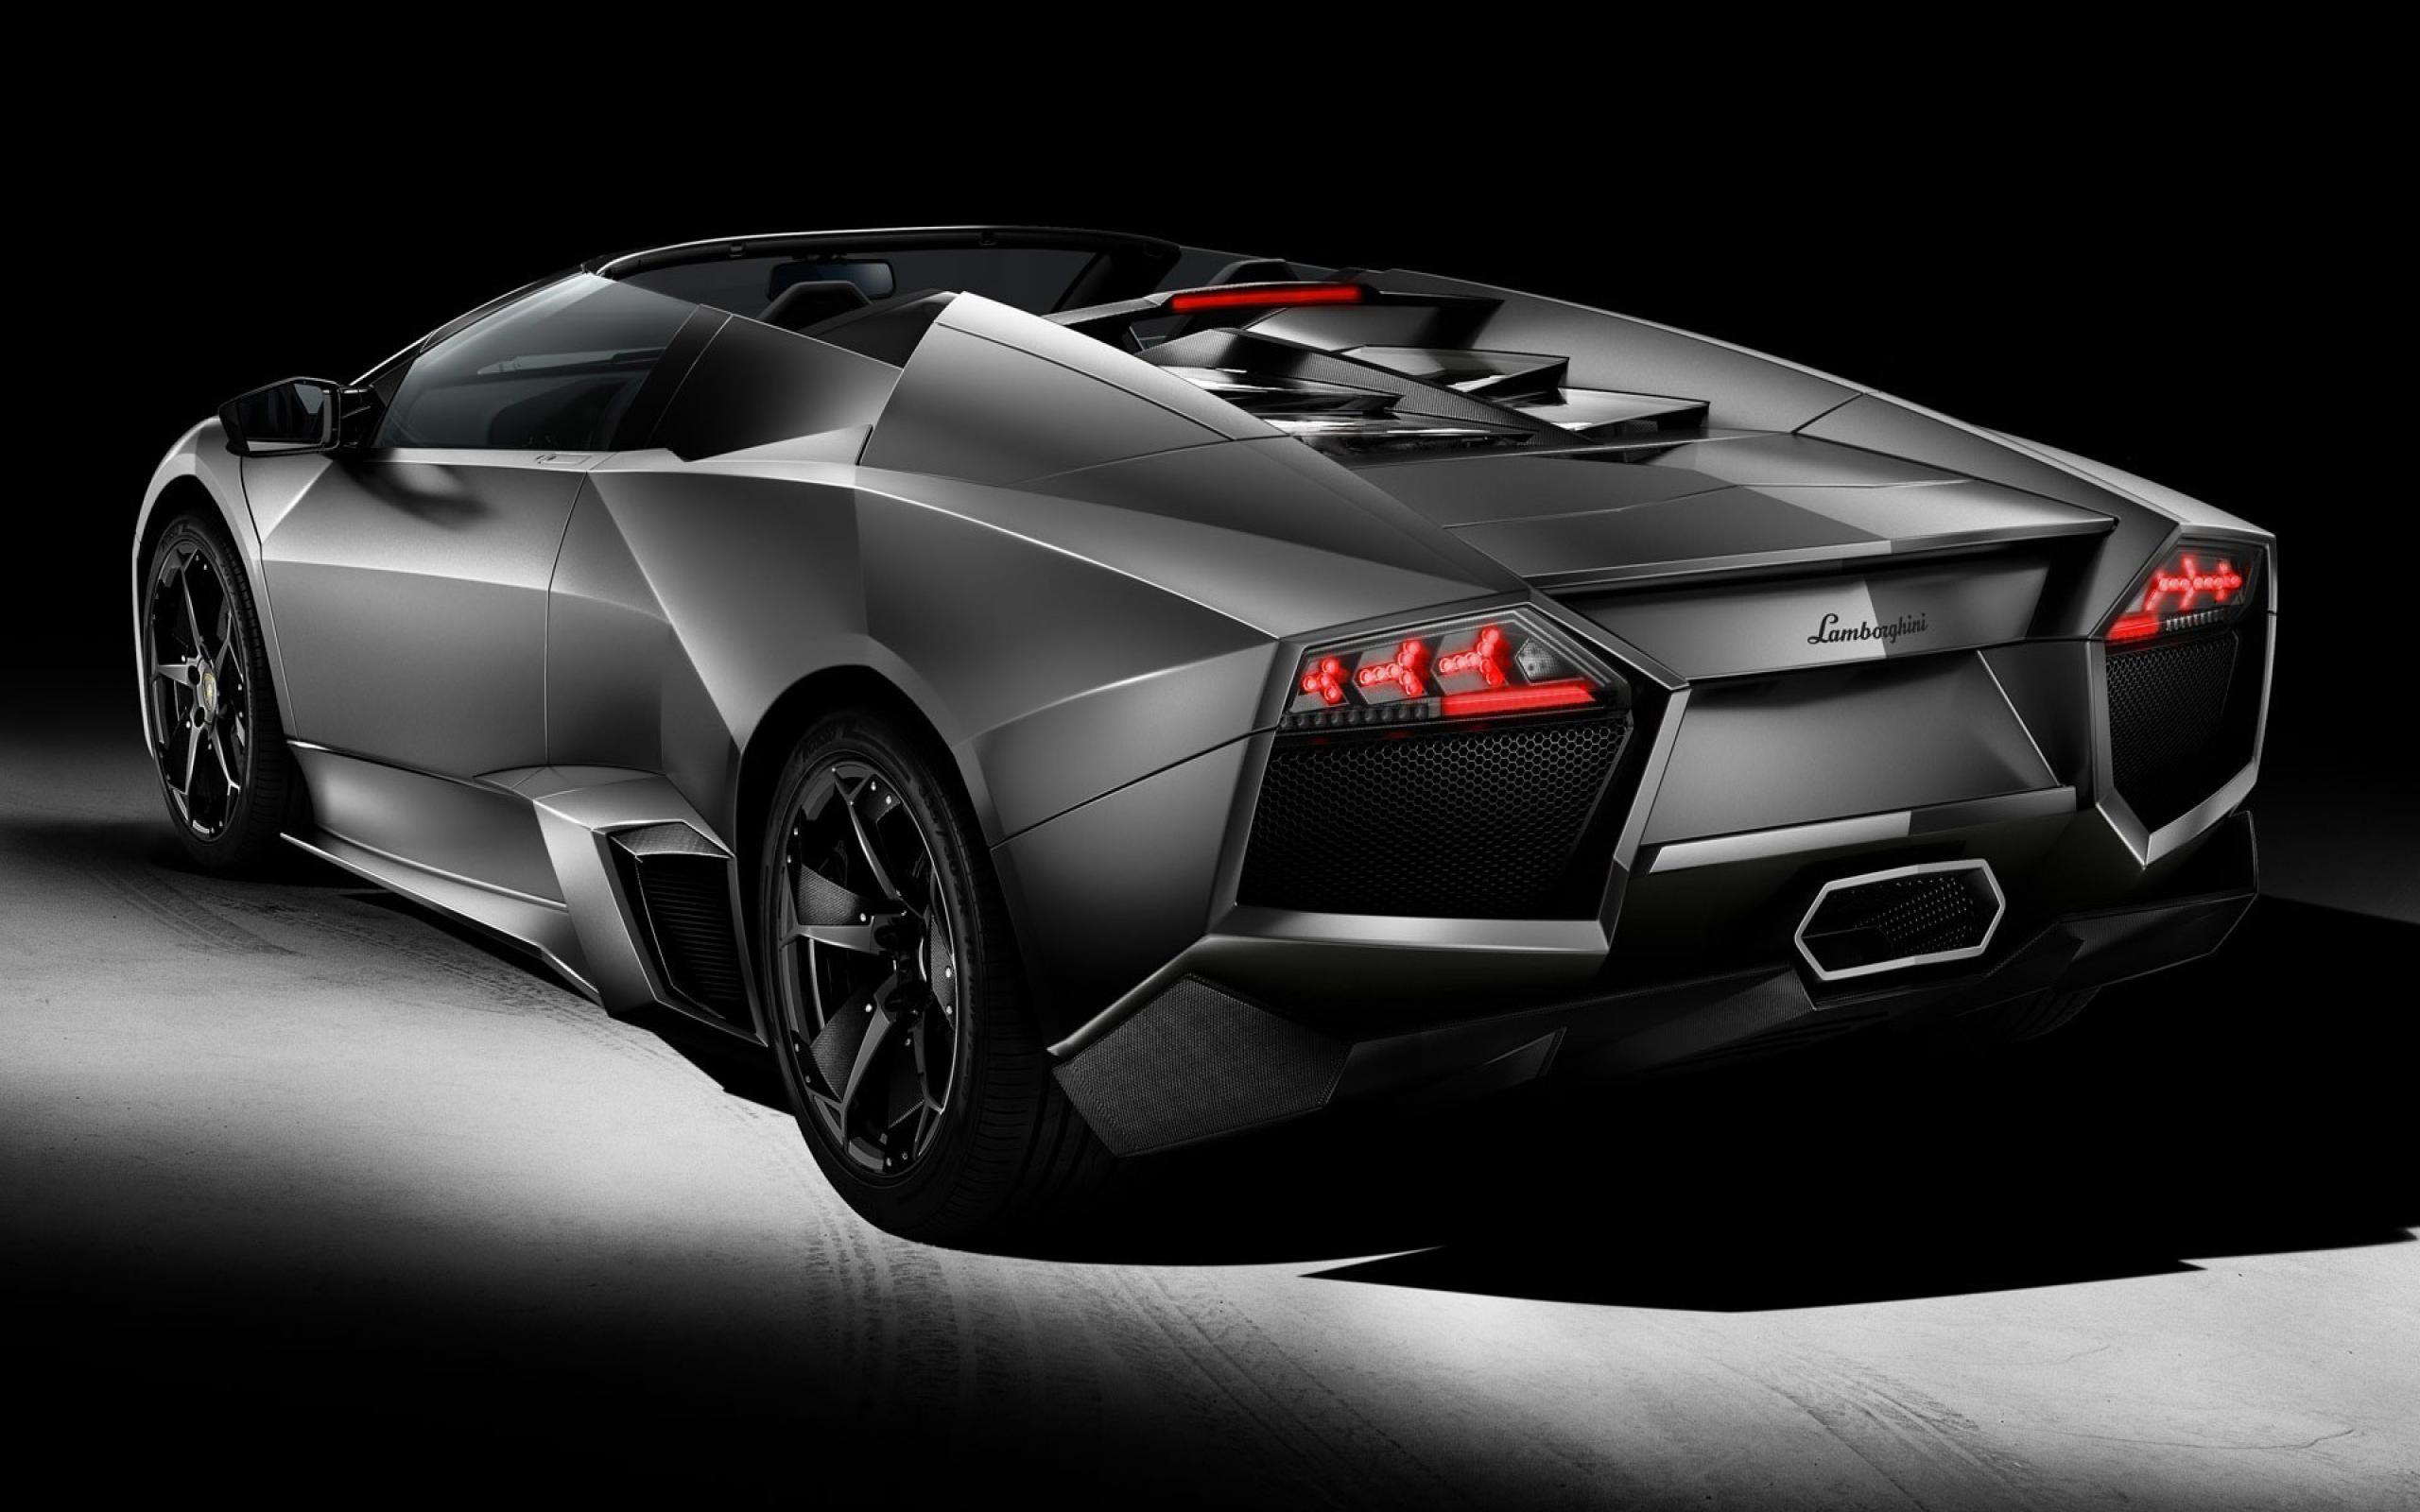 lamborghini reventon image wallpaper - photo #6